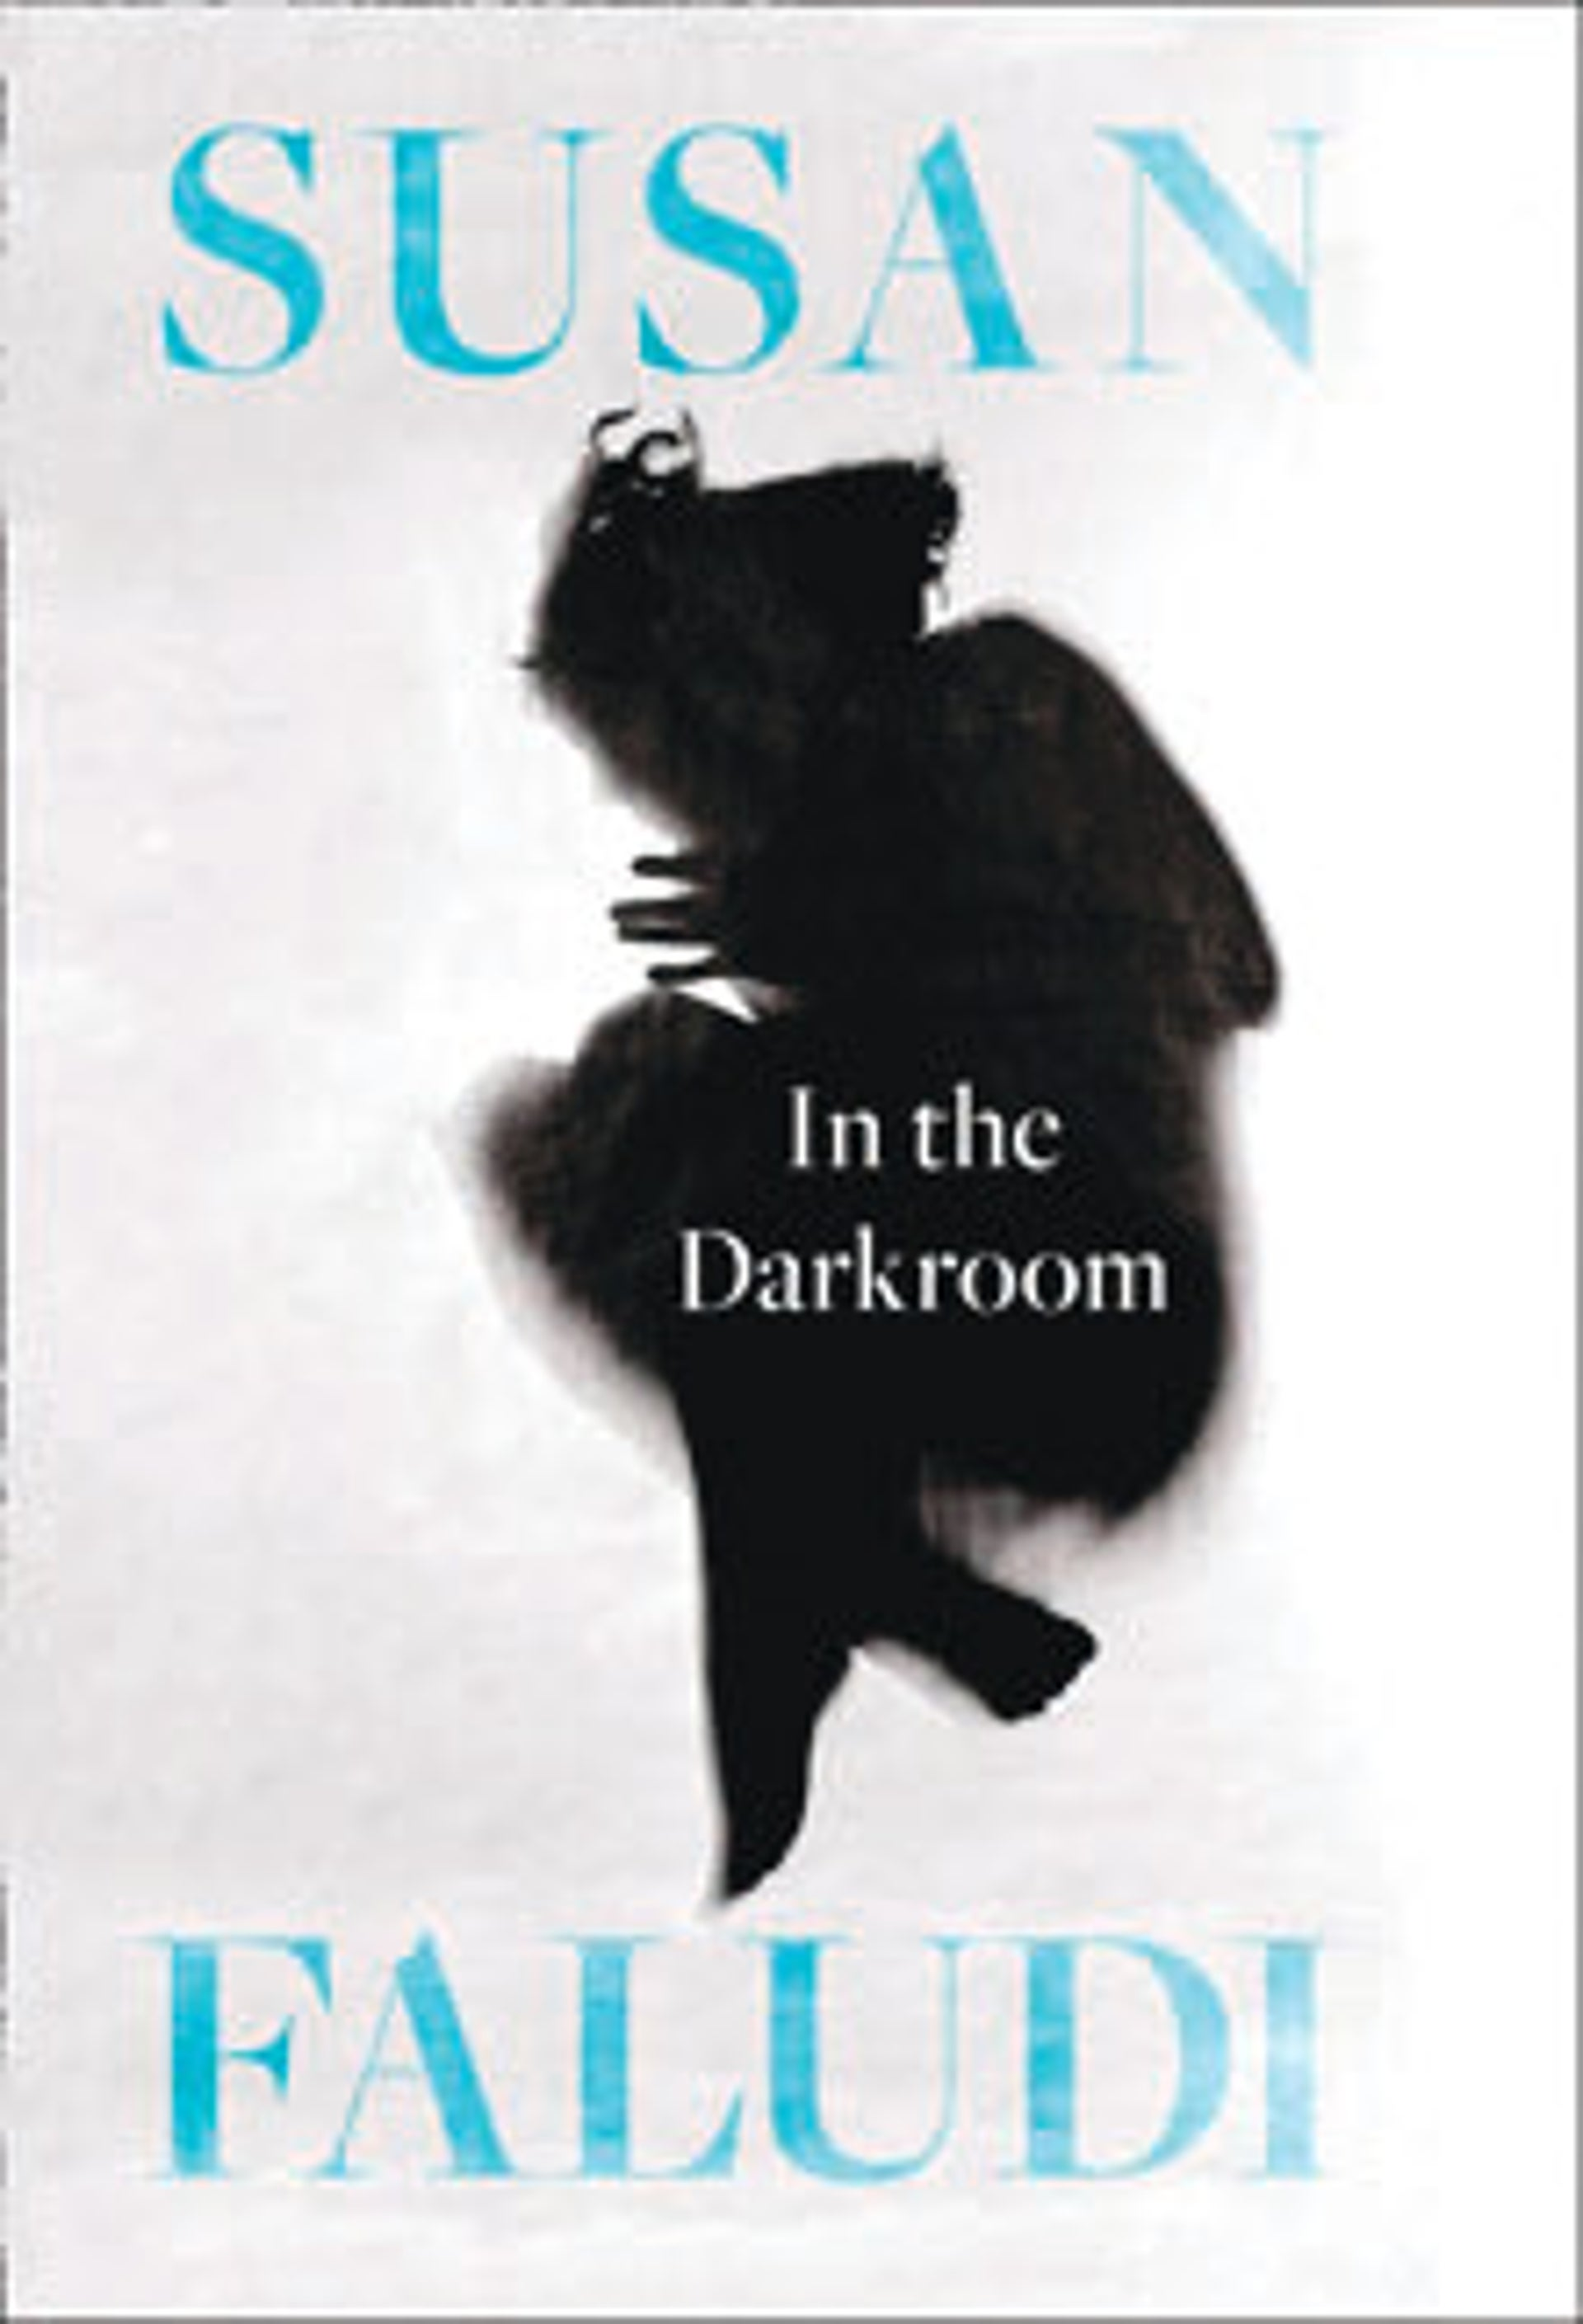 'In the Darkroom' by Susan Faludi.